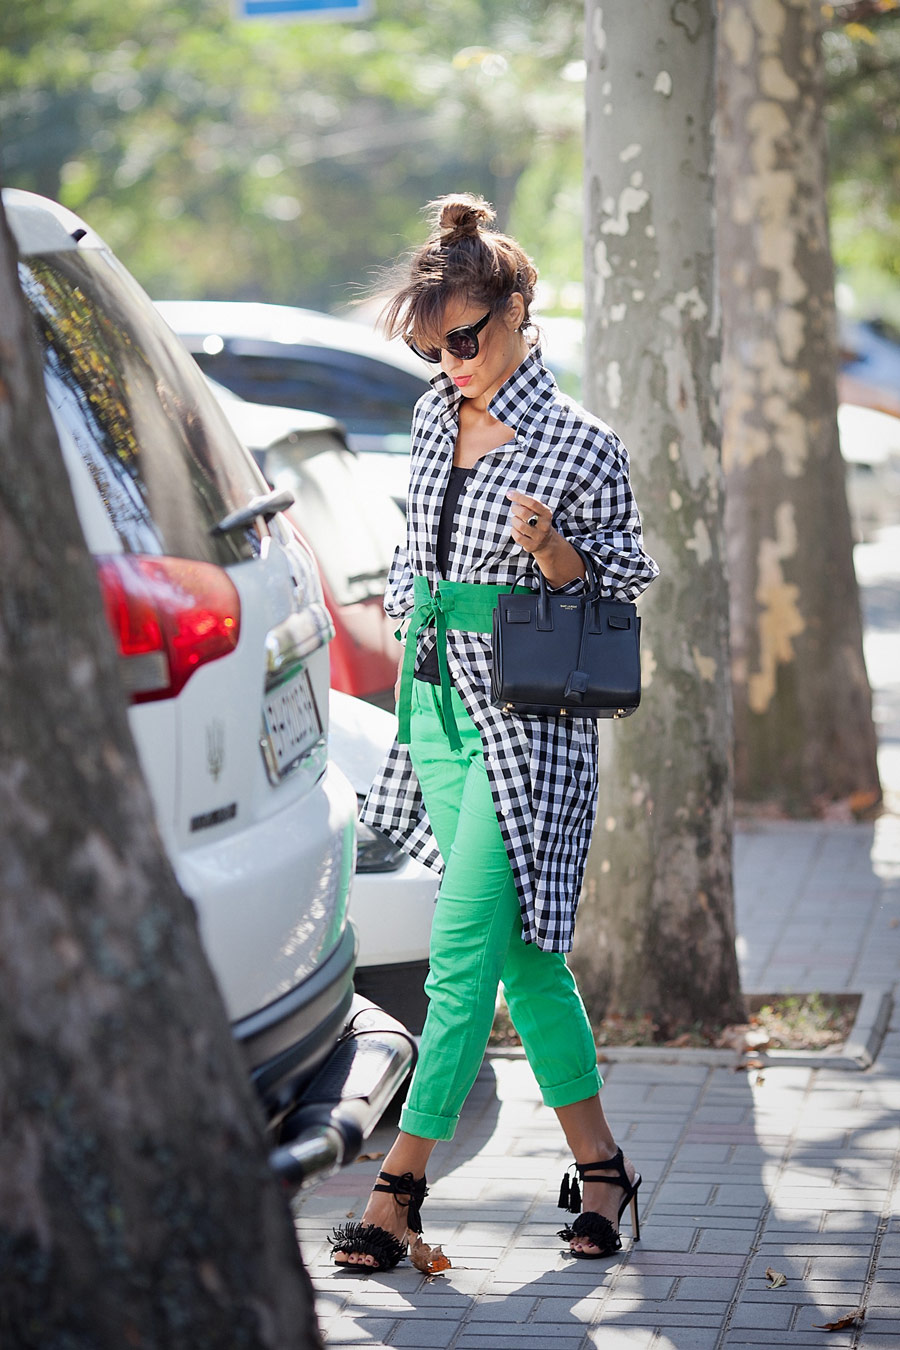 gingham shirt dress, green pants outfit, check shirt-dress outfit, ellena galant girl,